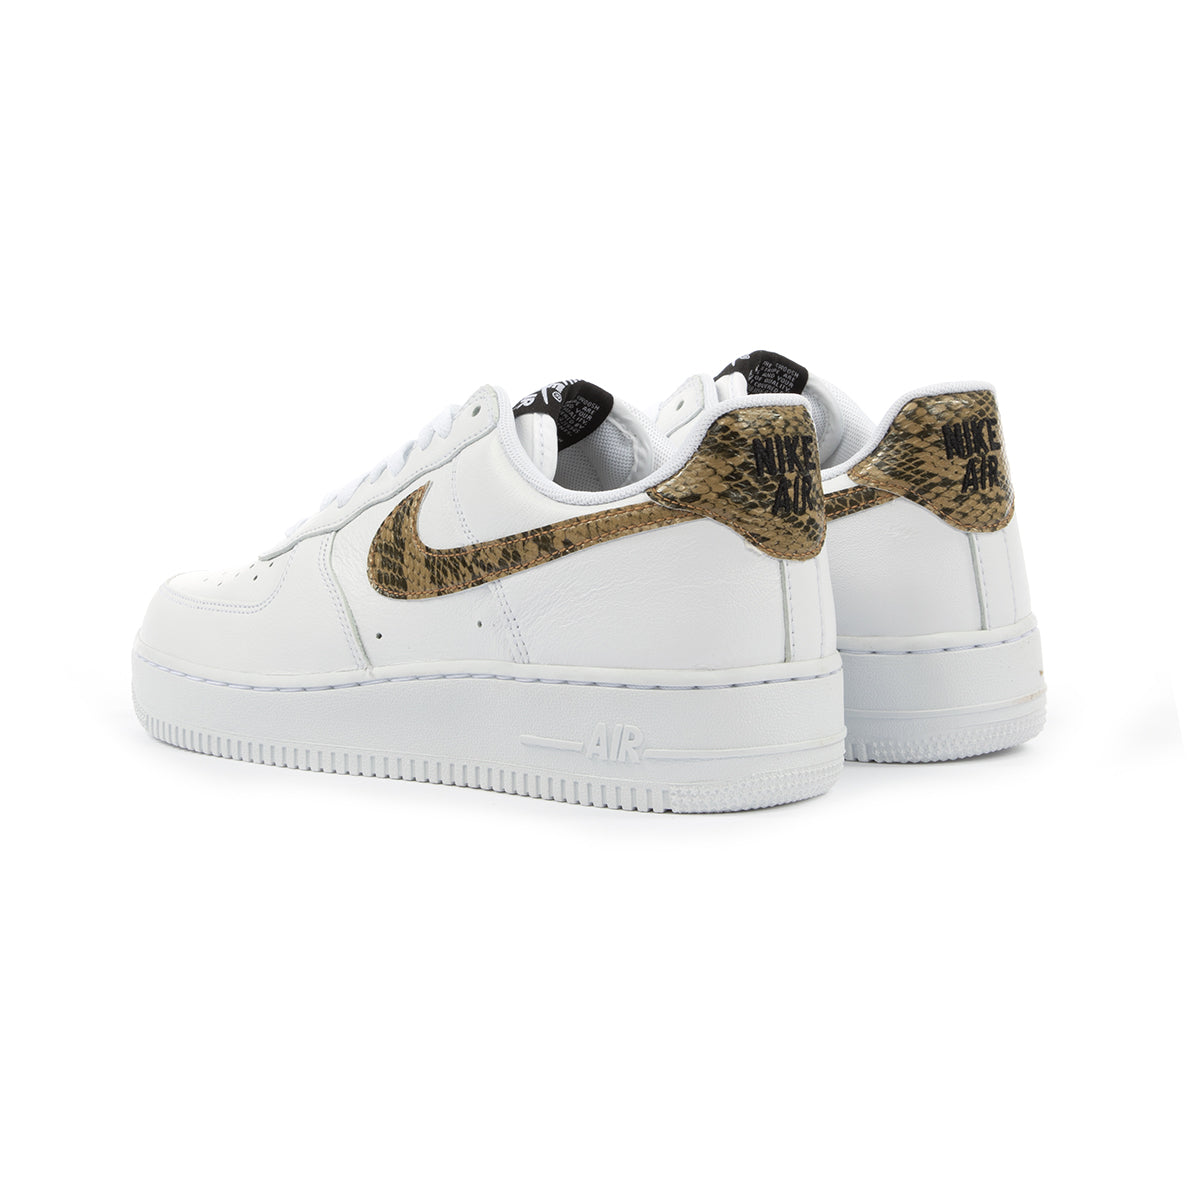 ConceptsintlNike Prm Qswhiteelemental Low Retro Air Force 1 OZiukXPT